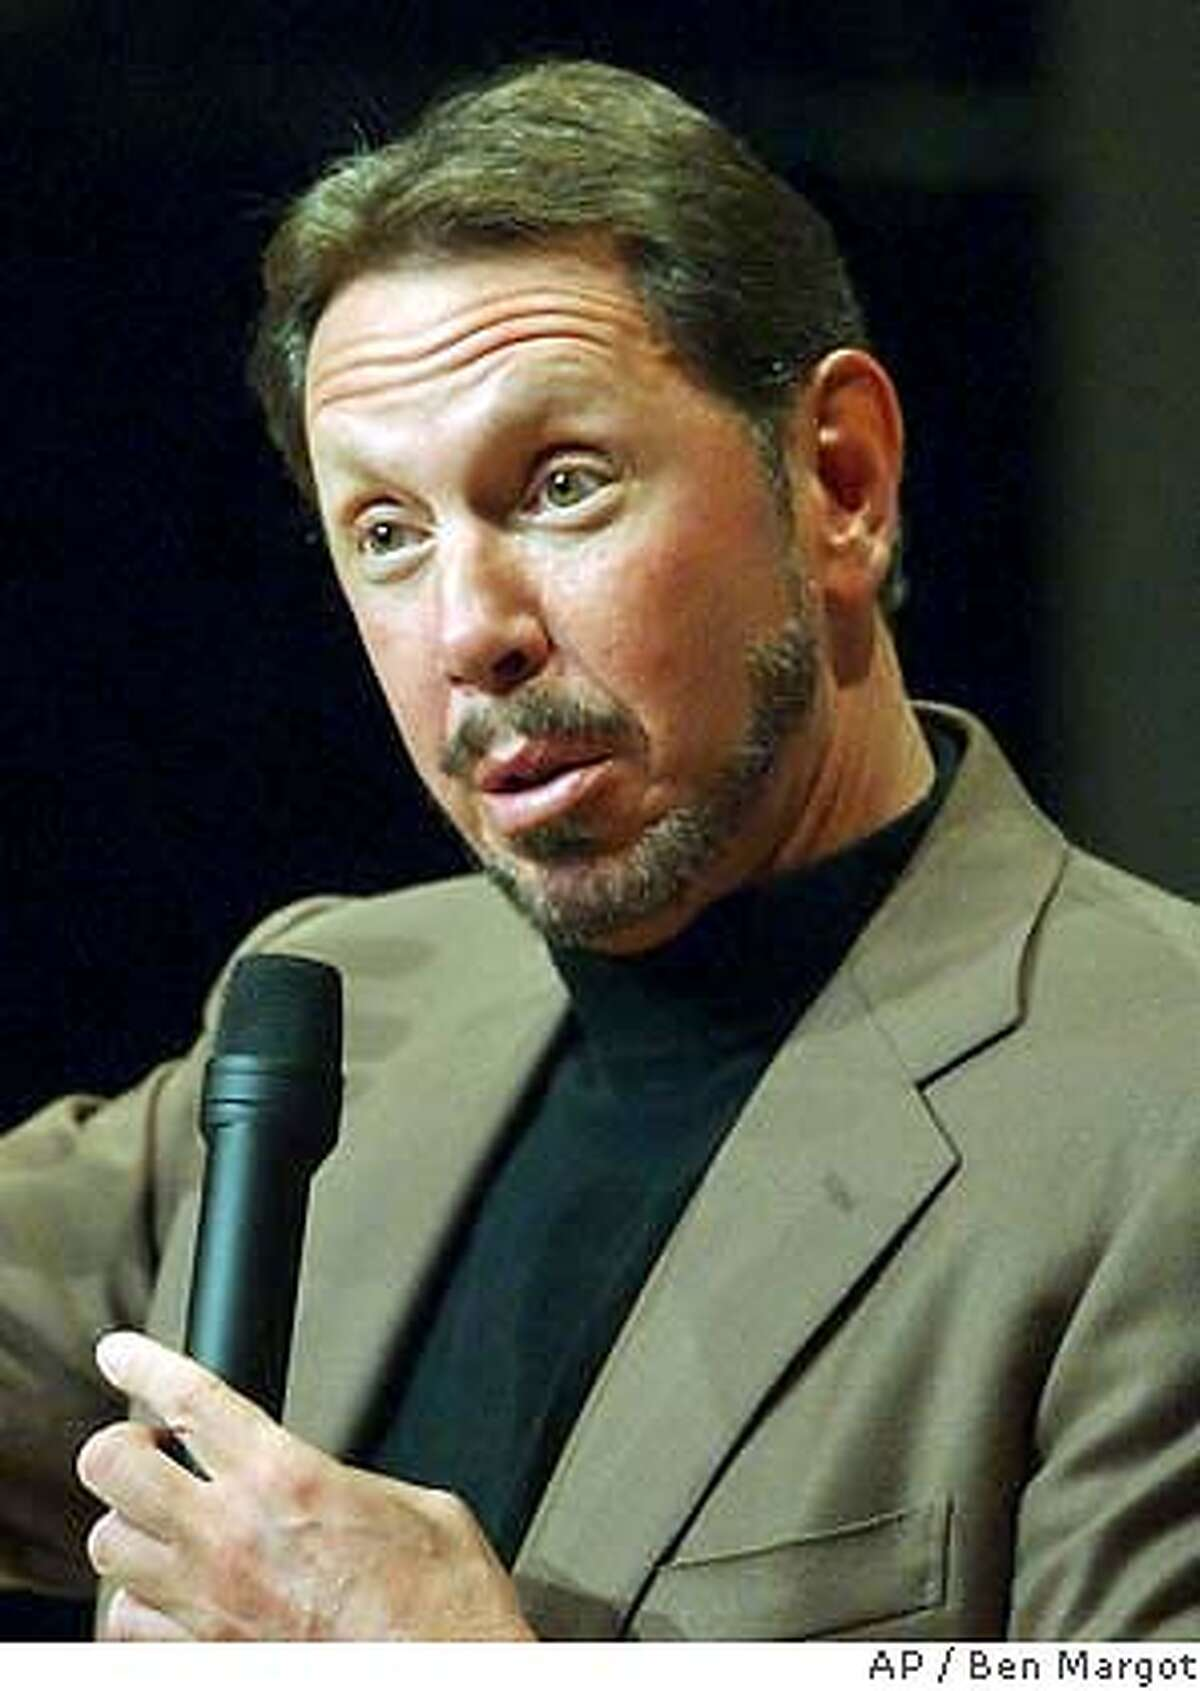 ** FILE ** Oracle Corp. chief executive Larry Ellison fields questions from financial analysts Wednesday, July 9, 2003, during Financial Analyst Day at Oracle headquarters in Redwood Shores, Calif. Ellison Has decided to fight a Justice Department lawsuit blocking his company's $9.4 billion bid for PeopleSoft Inc. (AP Photo/Ben Margot)